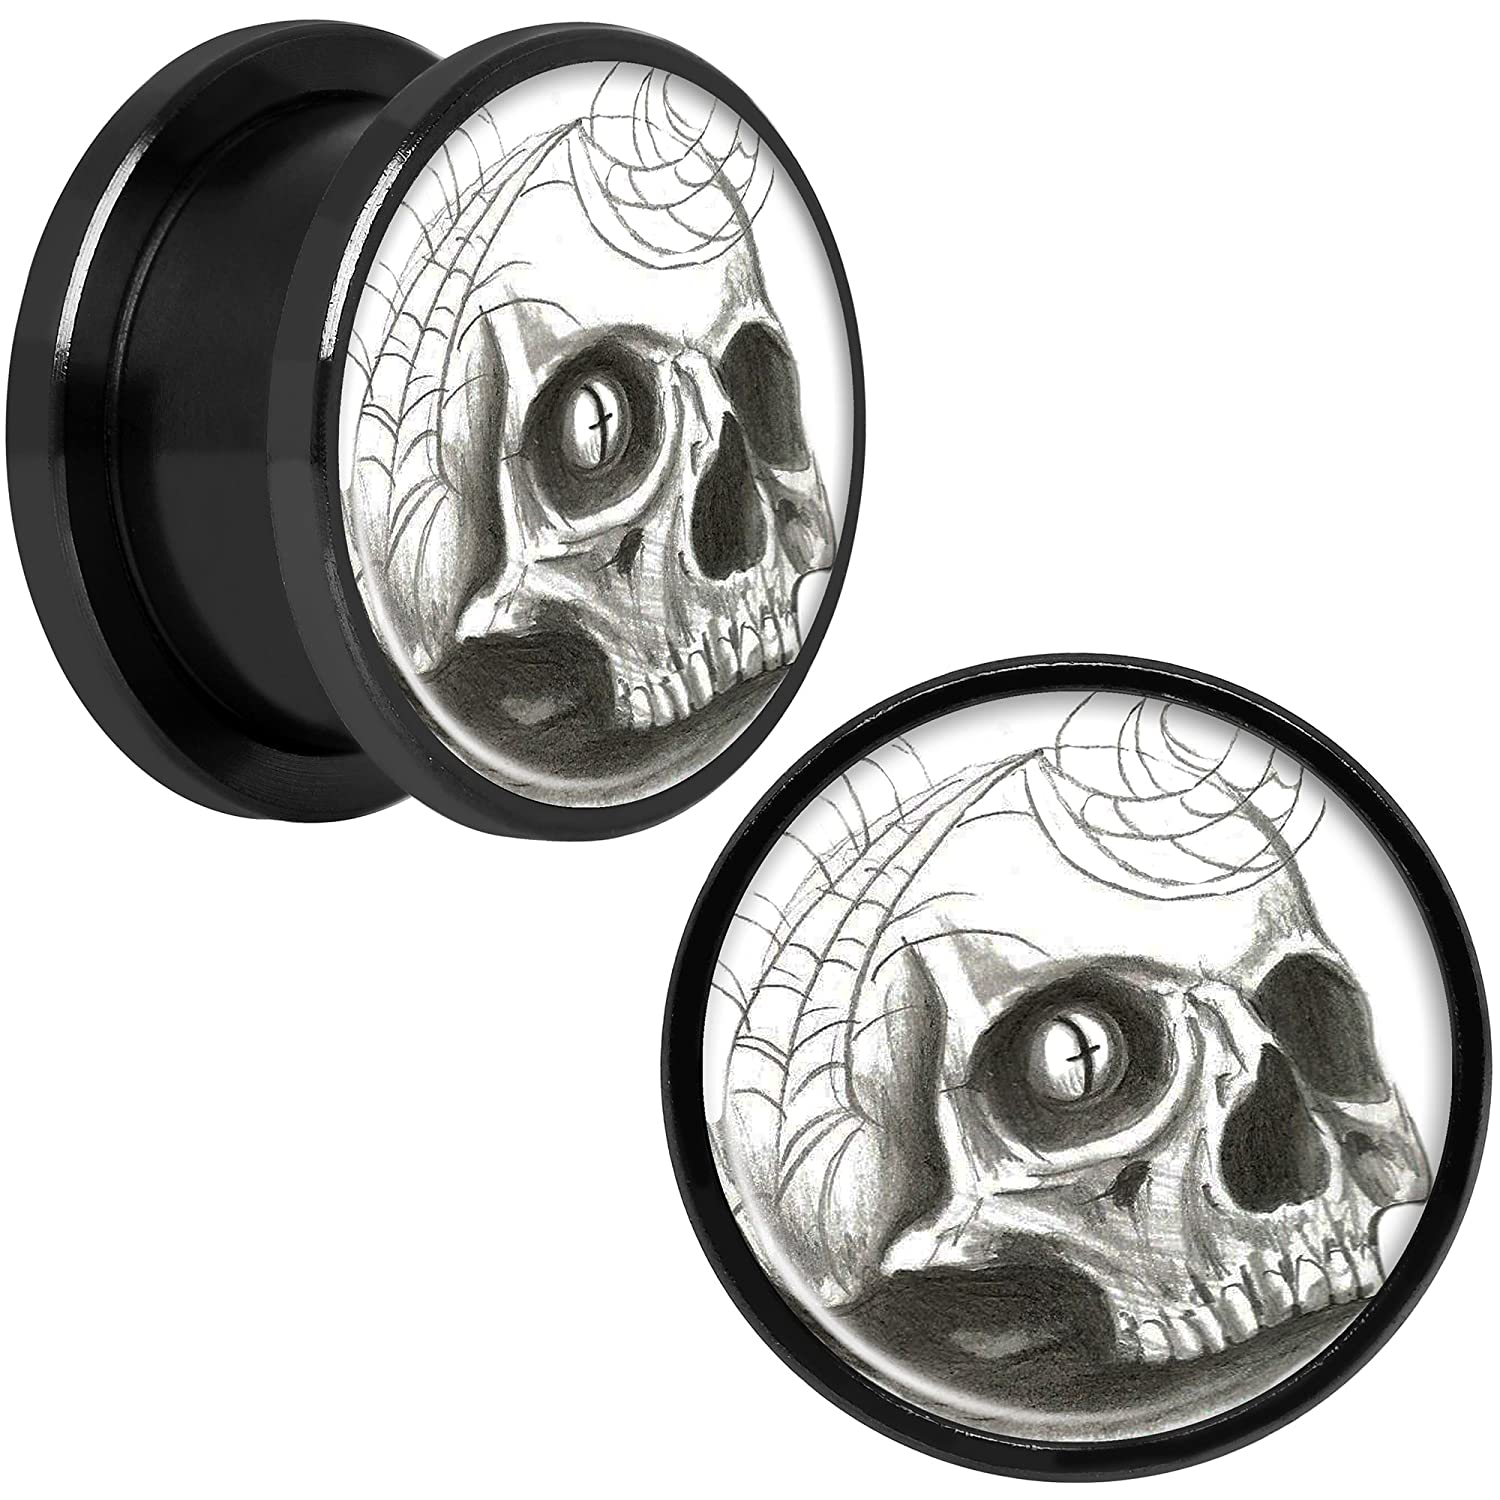 Body Candy Black Anodized Stainless Steel Webbed Skull Screw Fit Double Flare Plug Pair 5/8 CUPS-BK-741-16